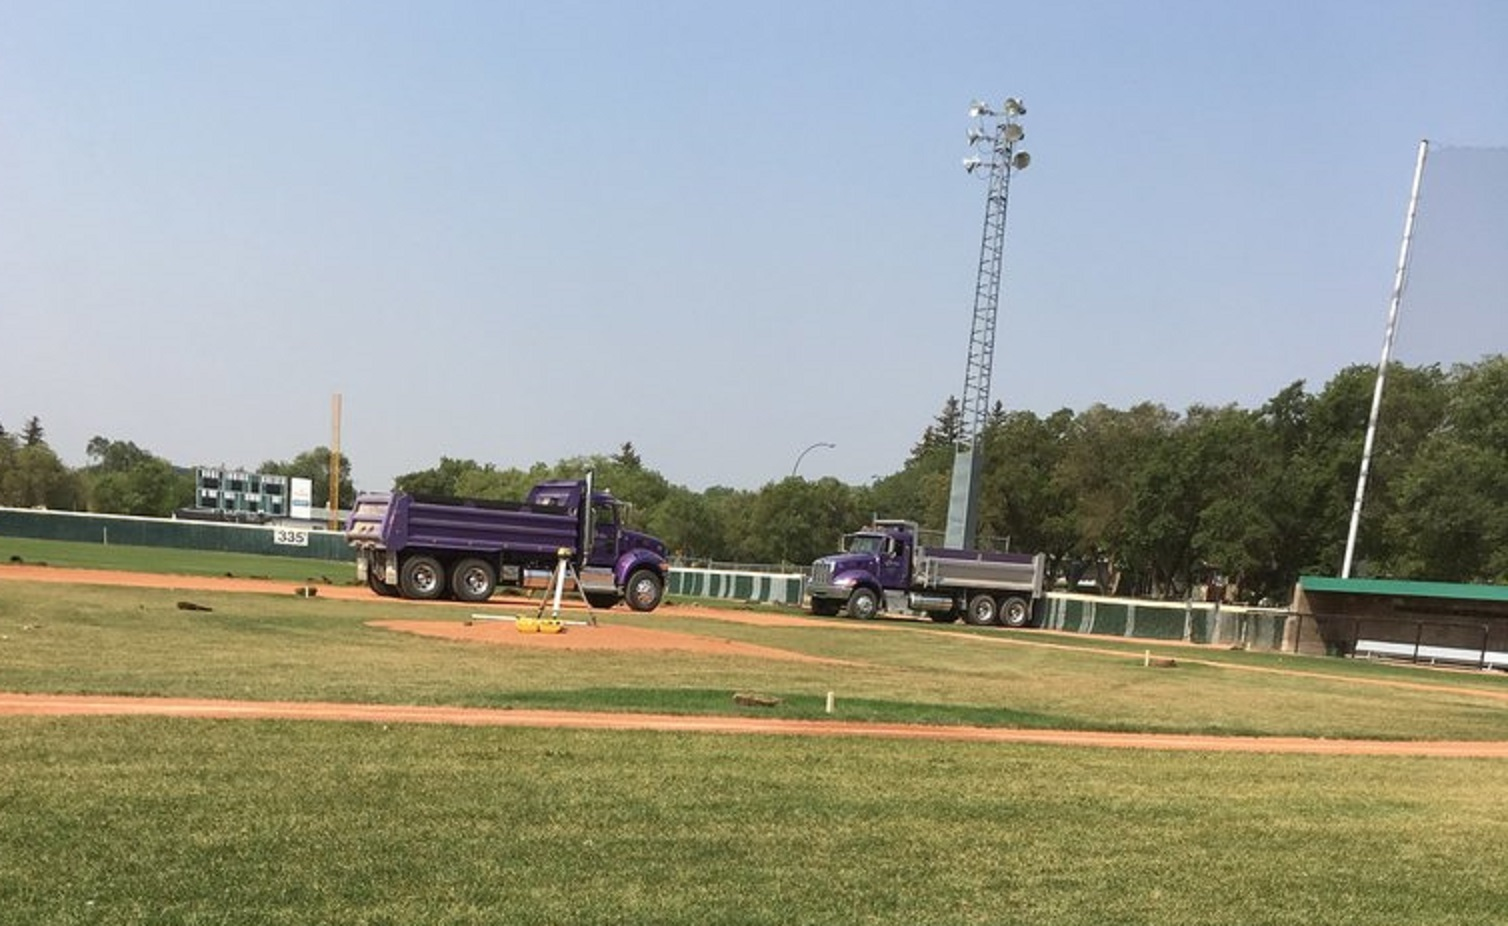 Regina Optimist Park Field Renovations Have Started! Aug 17 2018! Videos and Pics. Check Back for more pics and video to be added!  - Image 13